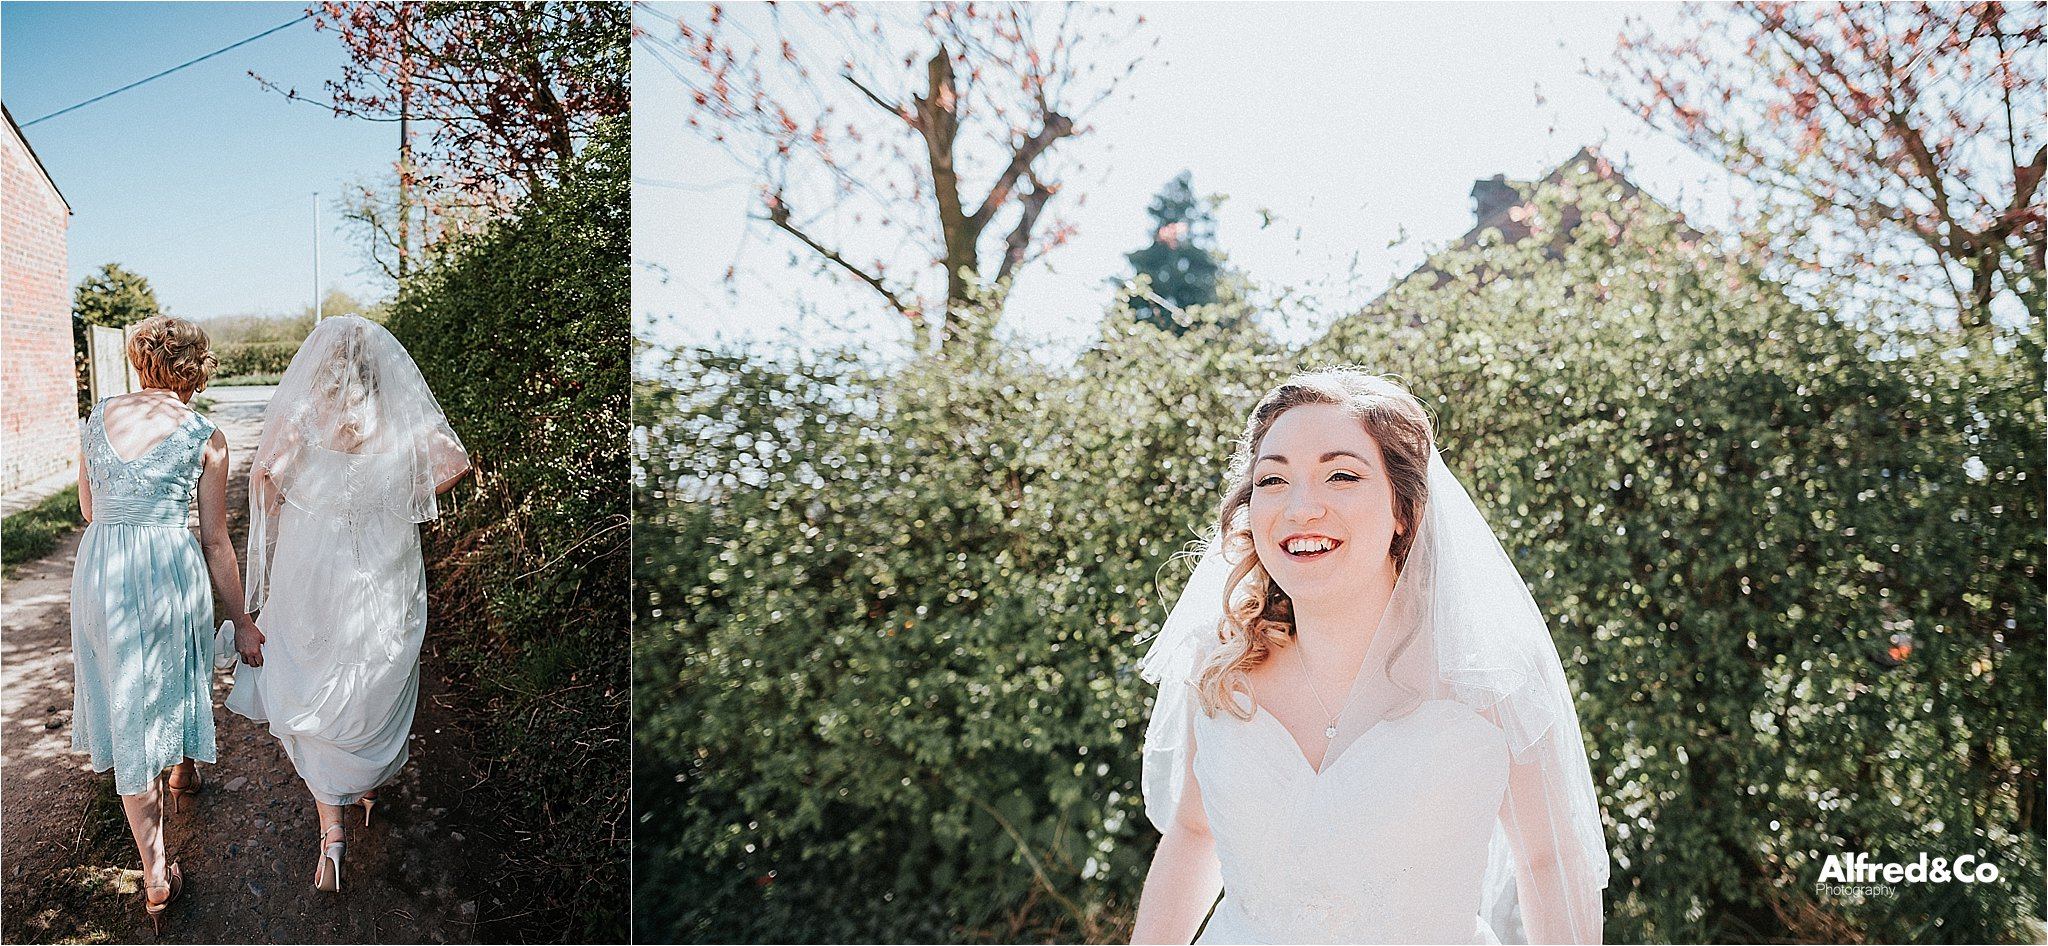 Relaxed wedding photography in lancashire